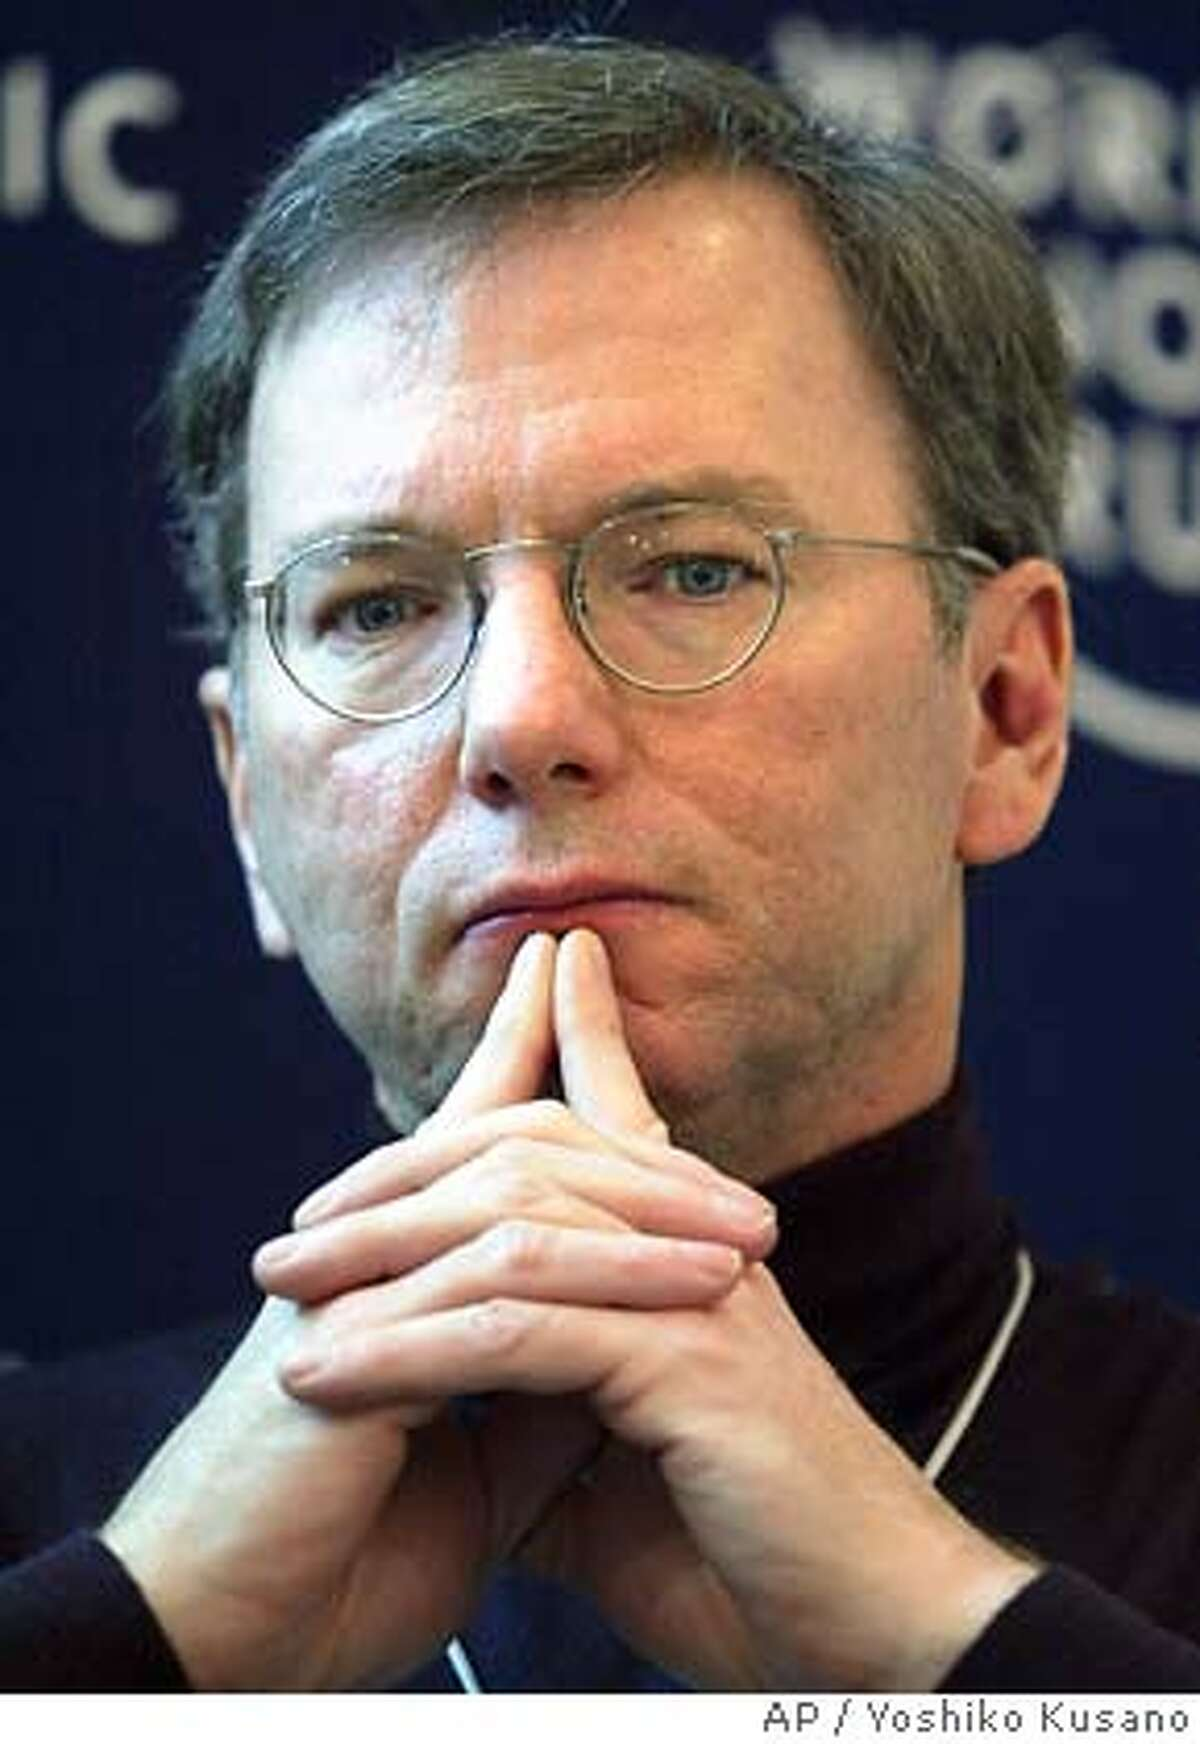 Eric Schmidt, CEO of Google, USA, participates in a panel session at the Annual Meeting of the World Economic Forum in Davos, Switzerland, Friday, Jan. 23, 2004. (AP Photo/ Keystone, Yoshiko Kusano) ALSO Ran on: 12-02-2004 Eric Schmidt, Googles chief executive, is pleased with the IPOs run-up. Ran on: 04-09-2005 ALSO RAN: 05/11/2005 ALSO Ran on: 06-22-2005